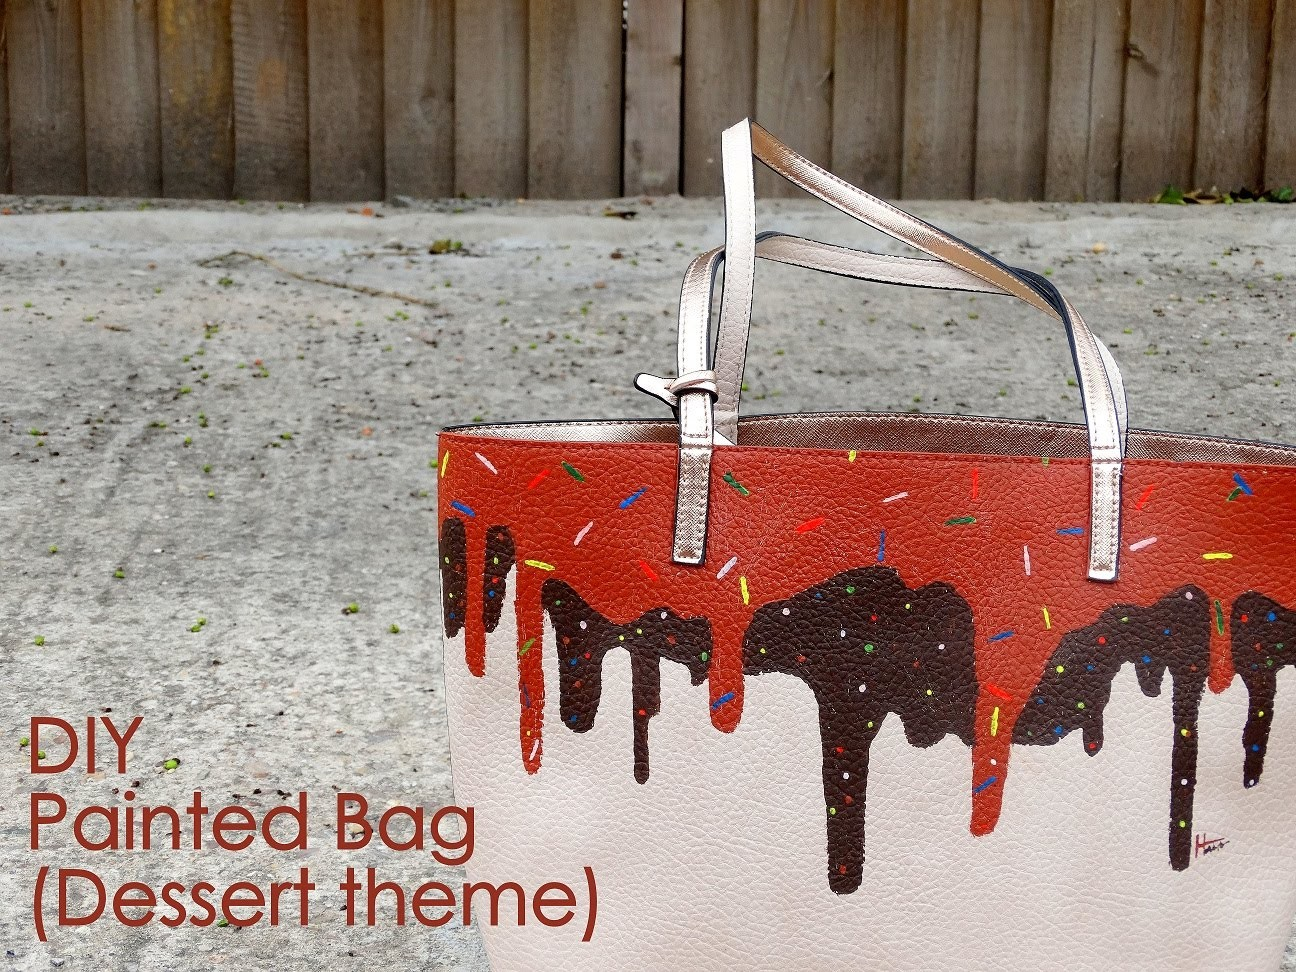 DIY- Painted Bag (Dessert theme)